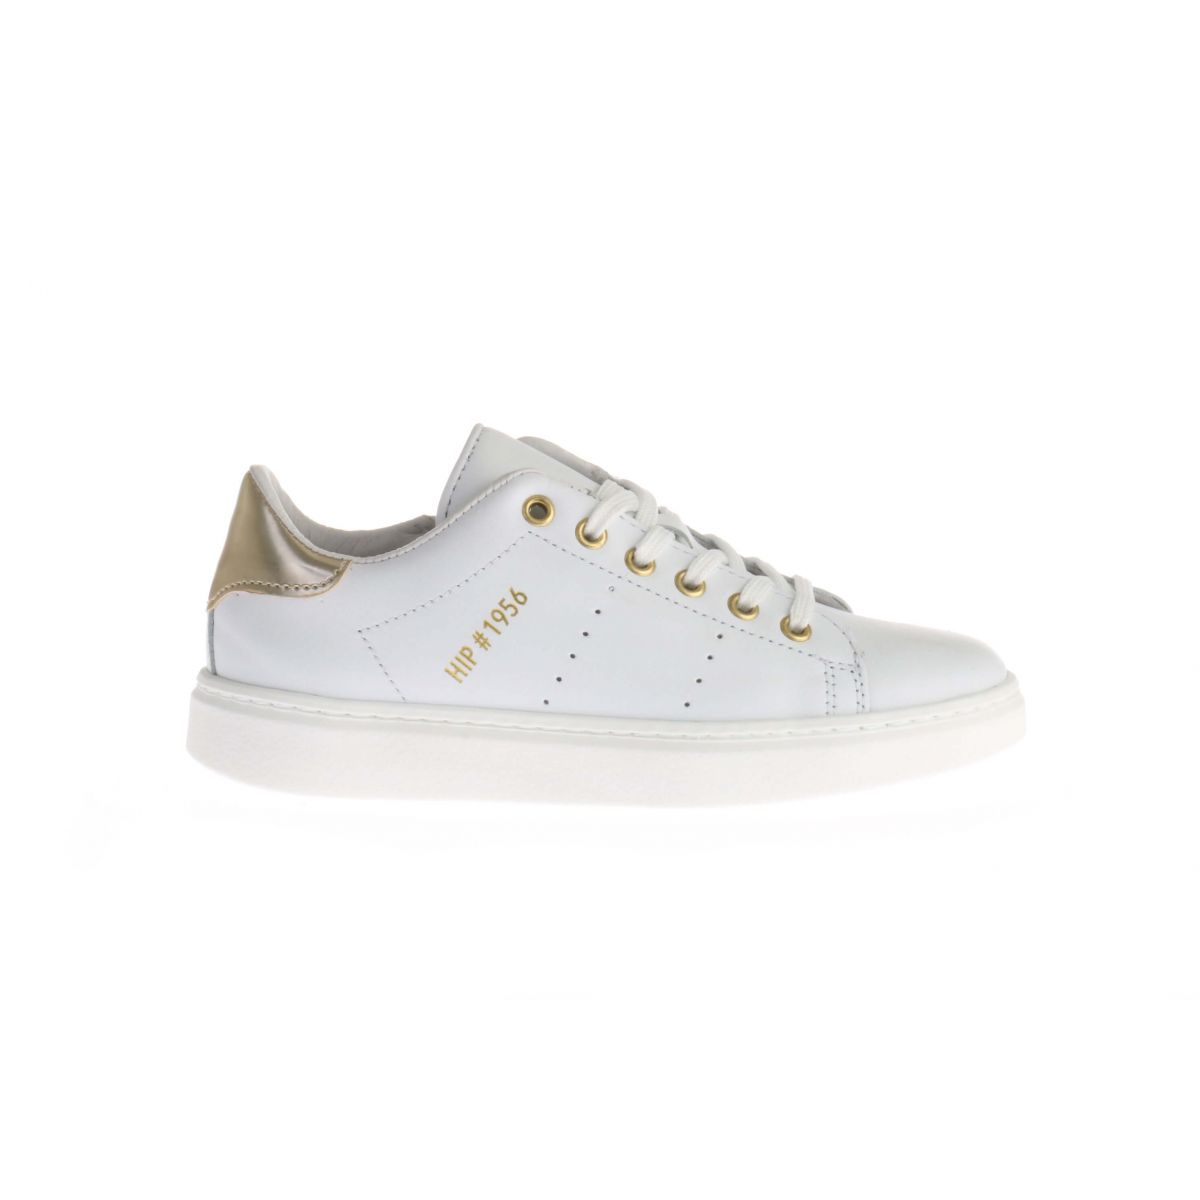 HIP H1108 Sneakers Wit/Goud